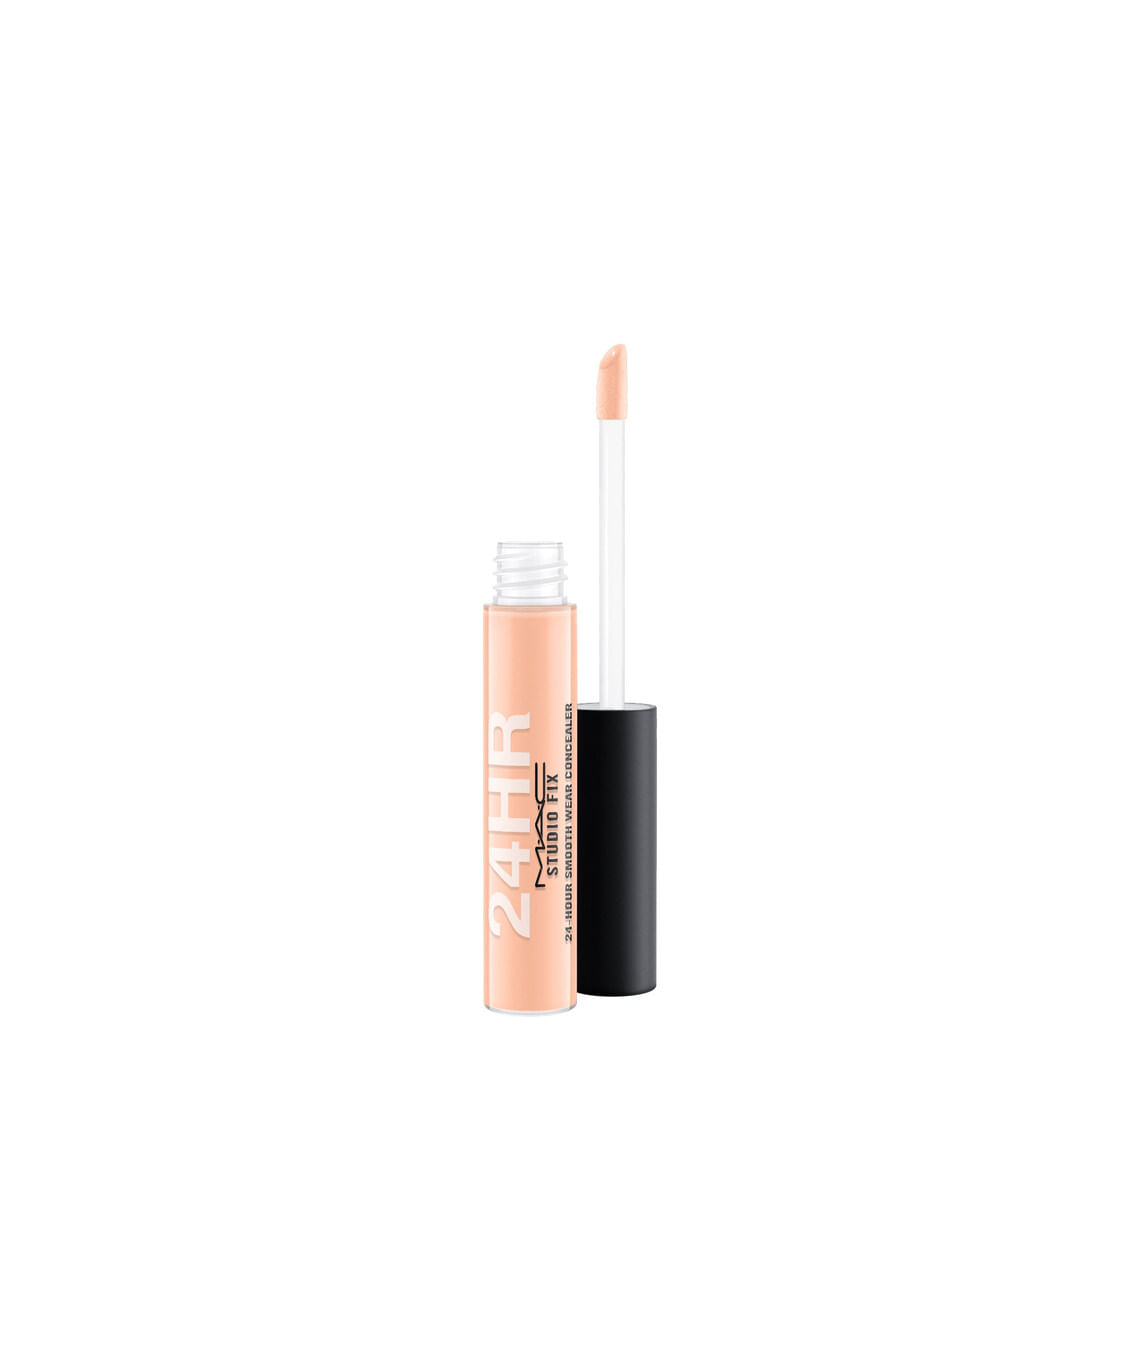 Corrector Studio fix 24 Hour Smooth Wear Concealer Nw30 7 ml